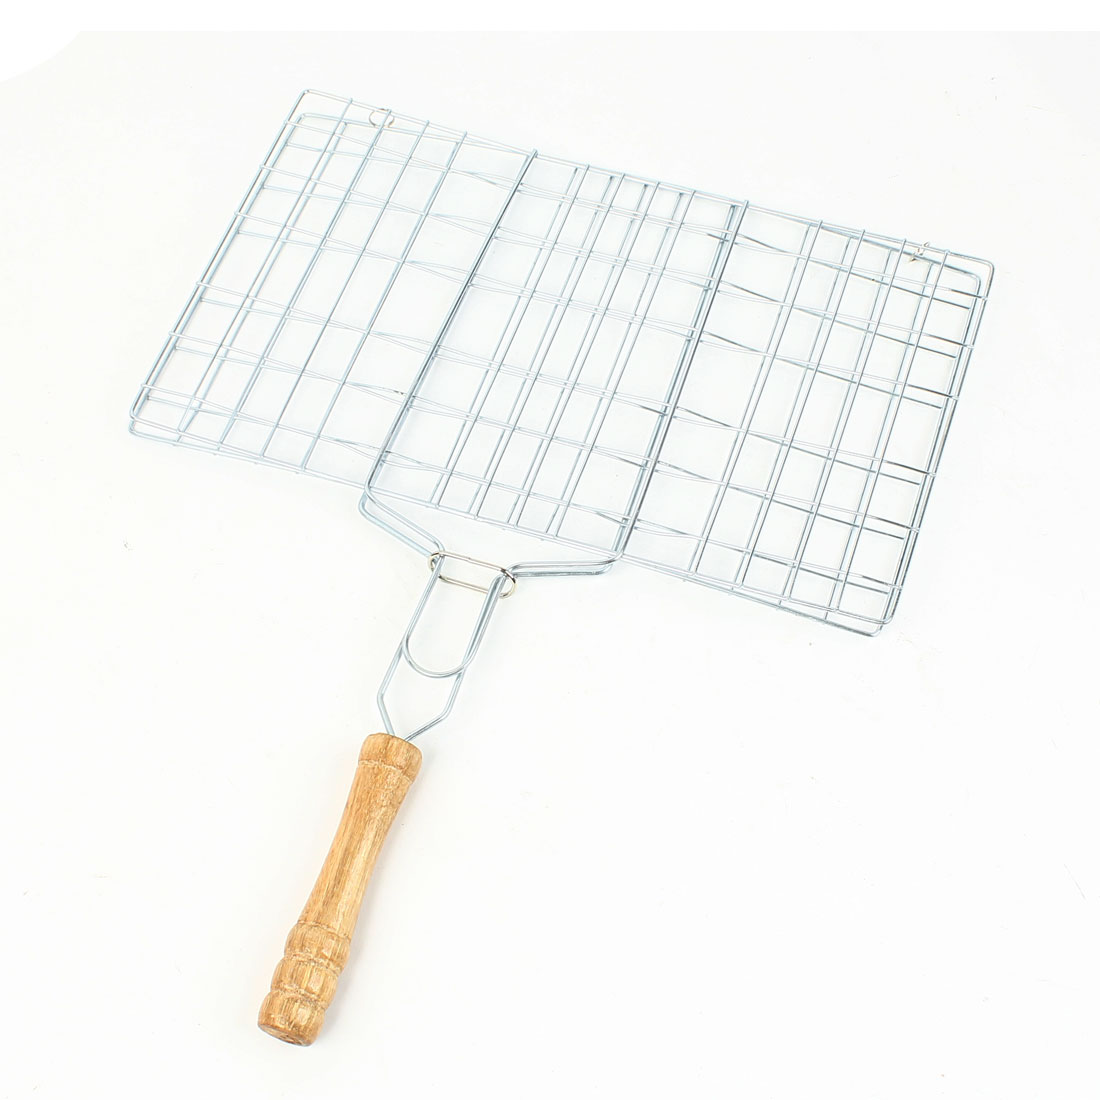 31.5 x 19 cm Outdoor Nonslip Wood Grip Rectangular Grill Net Barbecue Clamp